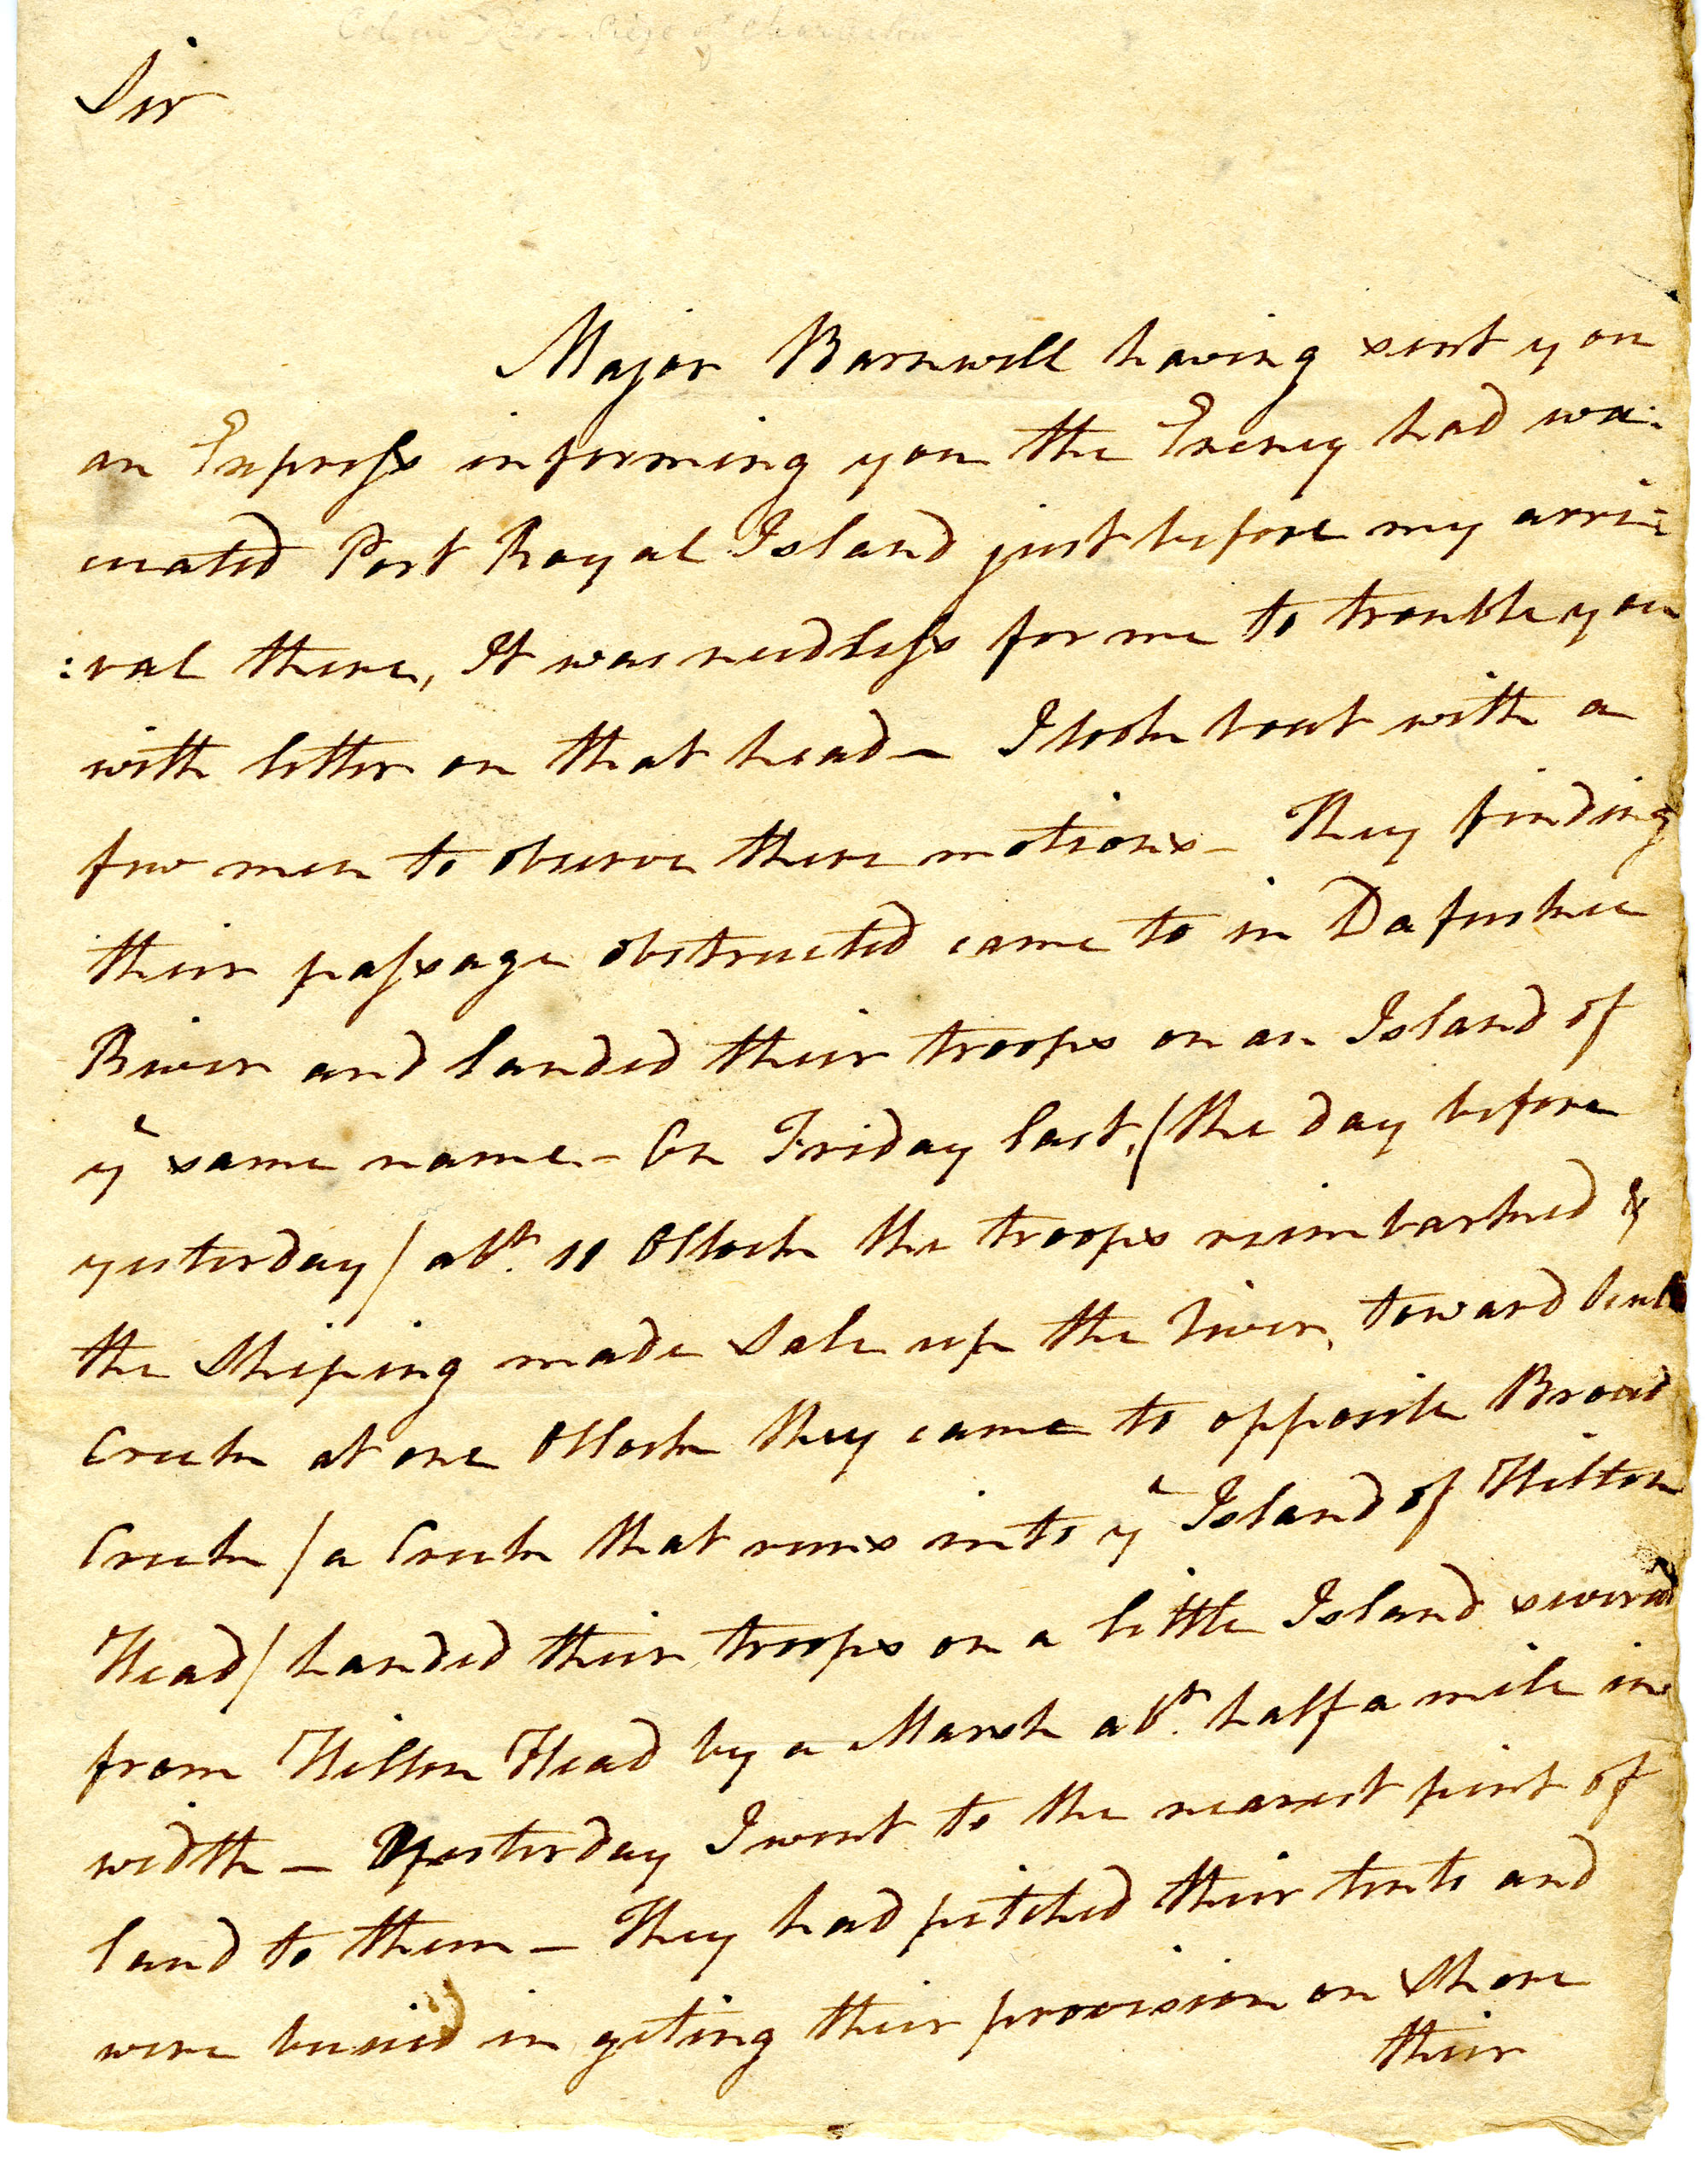 Letter from Benjamin Garden to Benjamin Lincoln